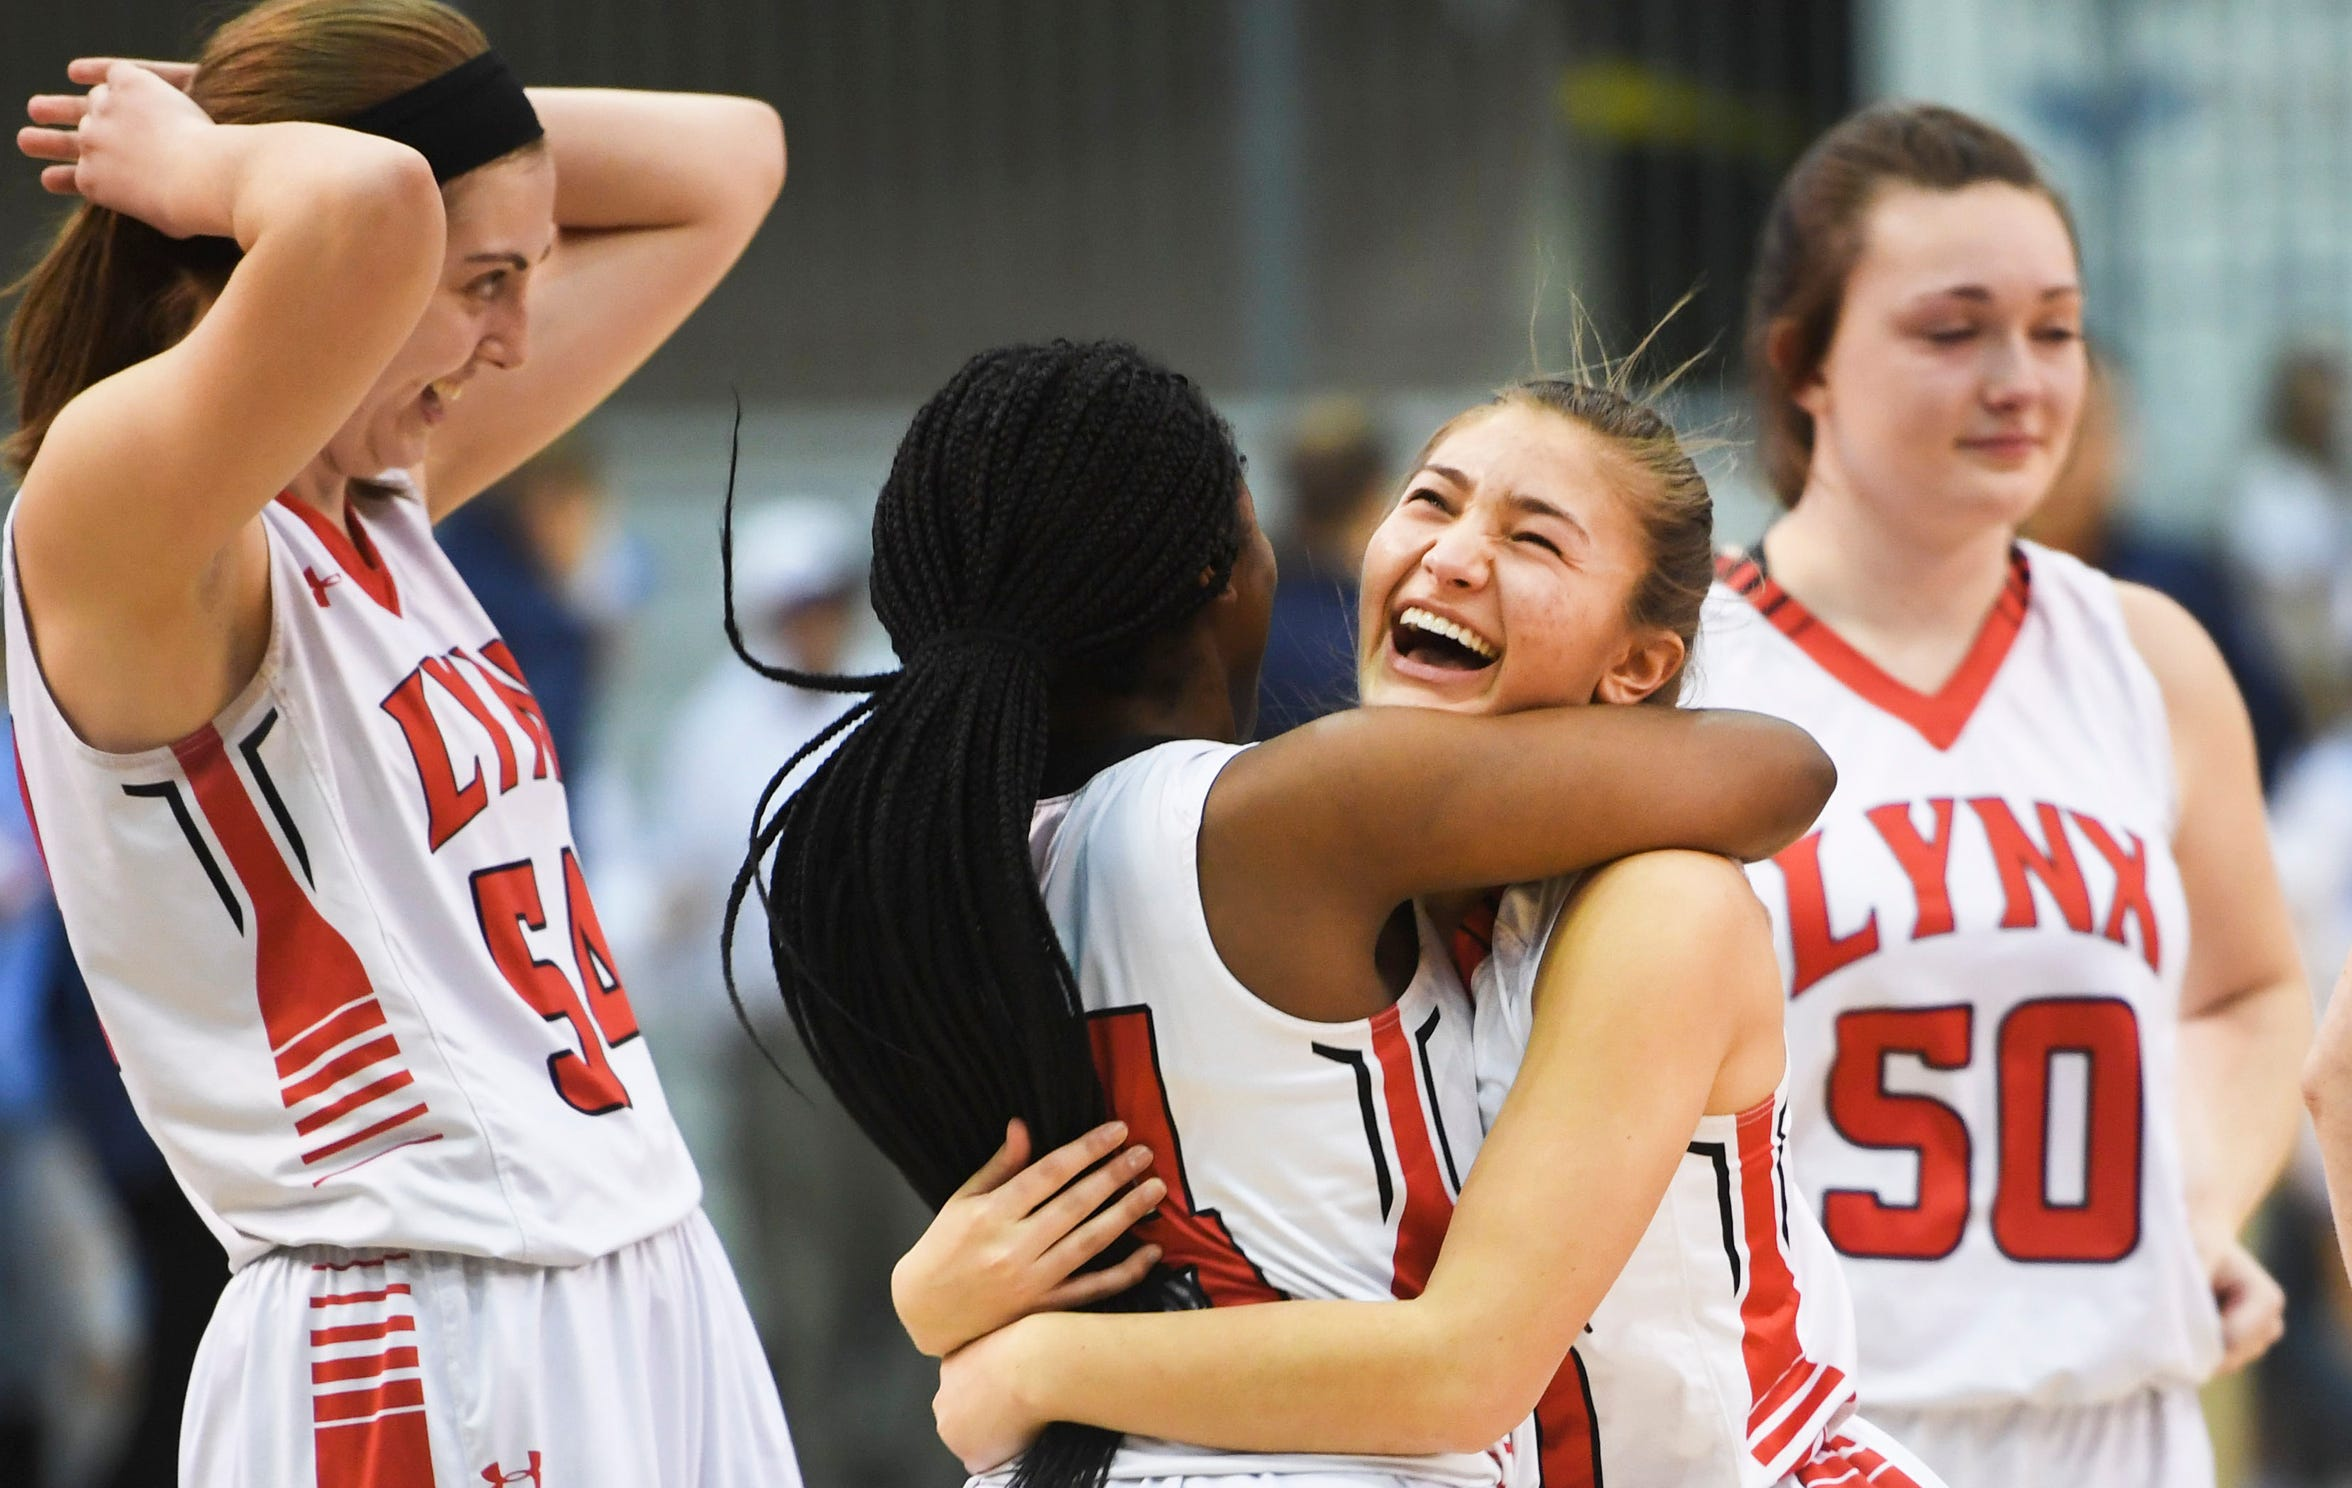 Brandon Valley celebrates after their win against Lincoln in the Class AA finals Saturday, March 16, 2019 in Rapid City.